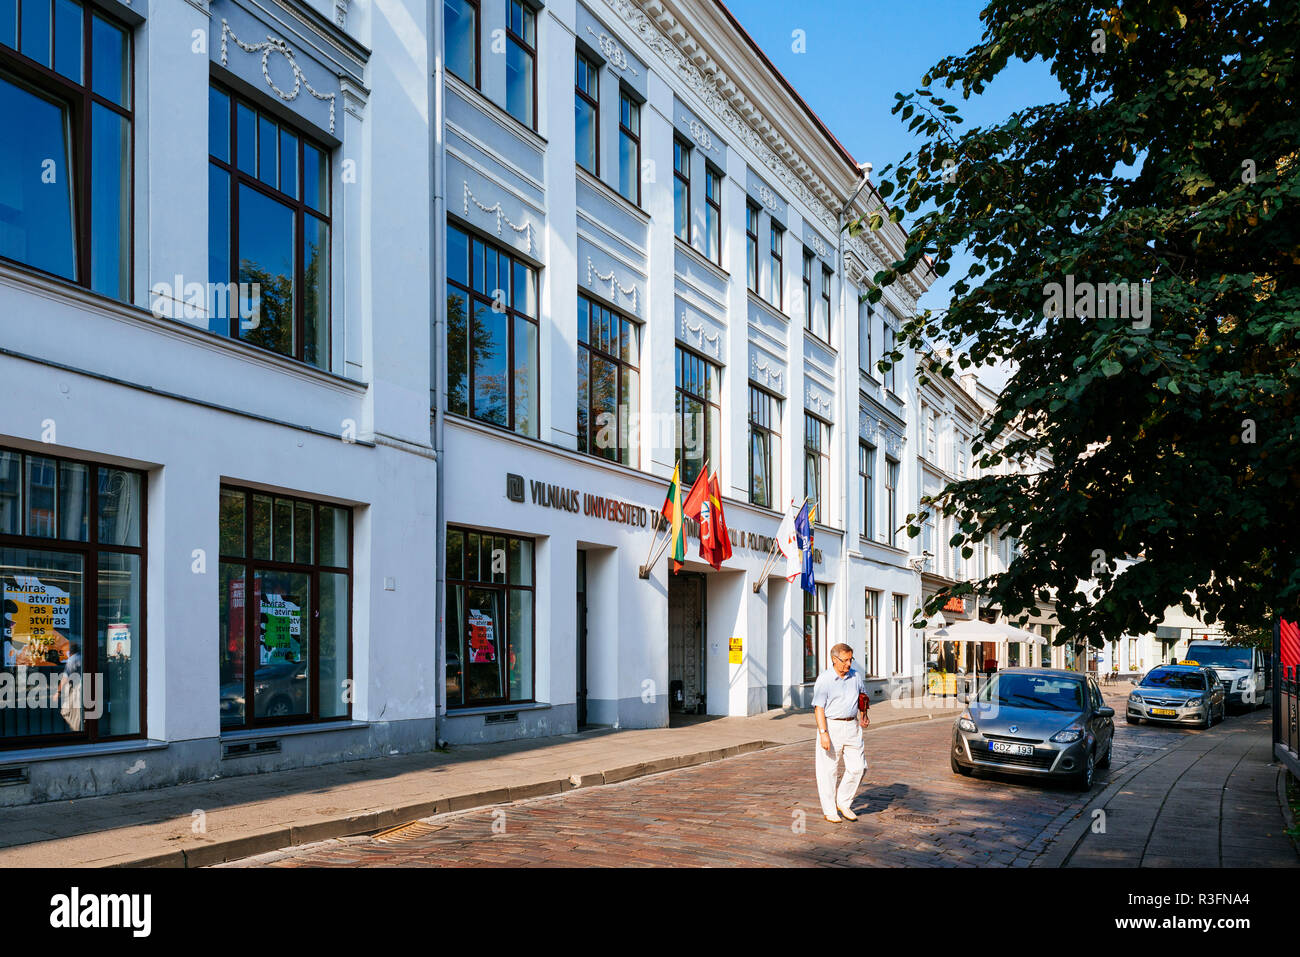 Facade, Institute of International Relations and Political Science. Vilnius University. Vilnius, Vilnius County, Lithuania, Baltic states, Europe. - Stock Image